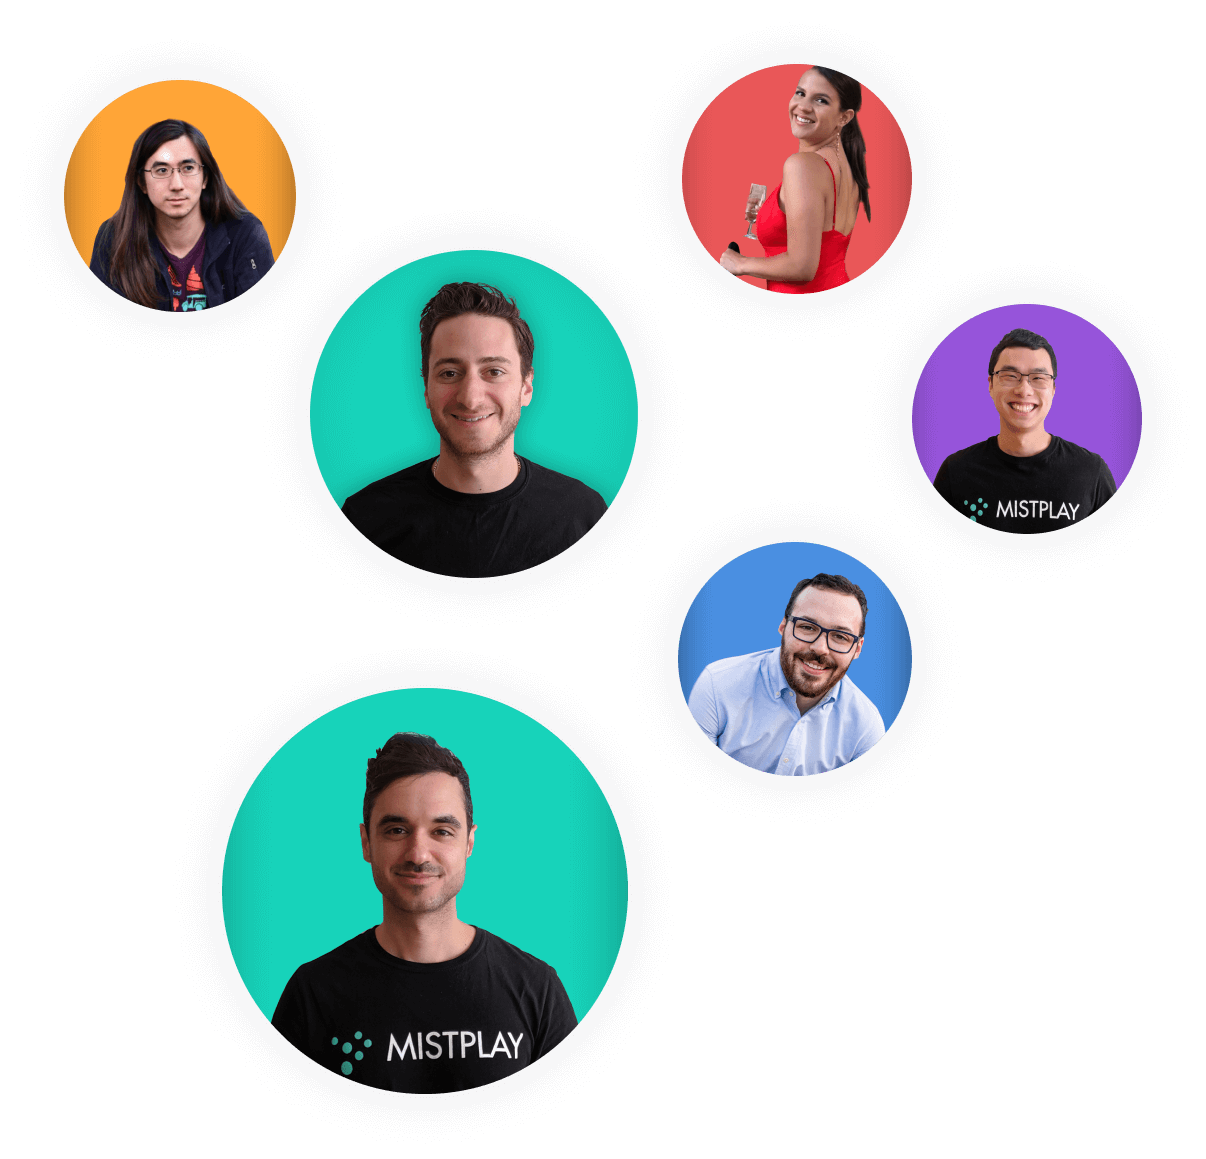 6 picture of the Mistplay lead team